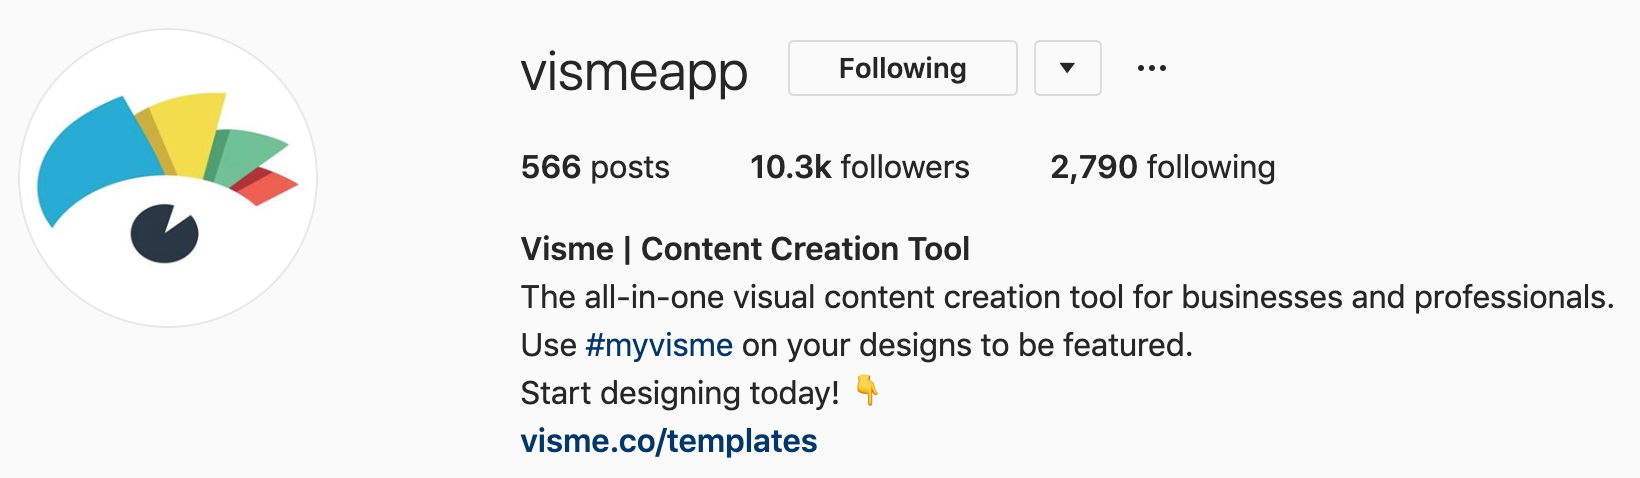 visme's brand hashtag in their instagram bio asks as a way of social mentioning